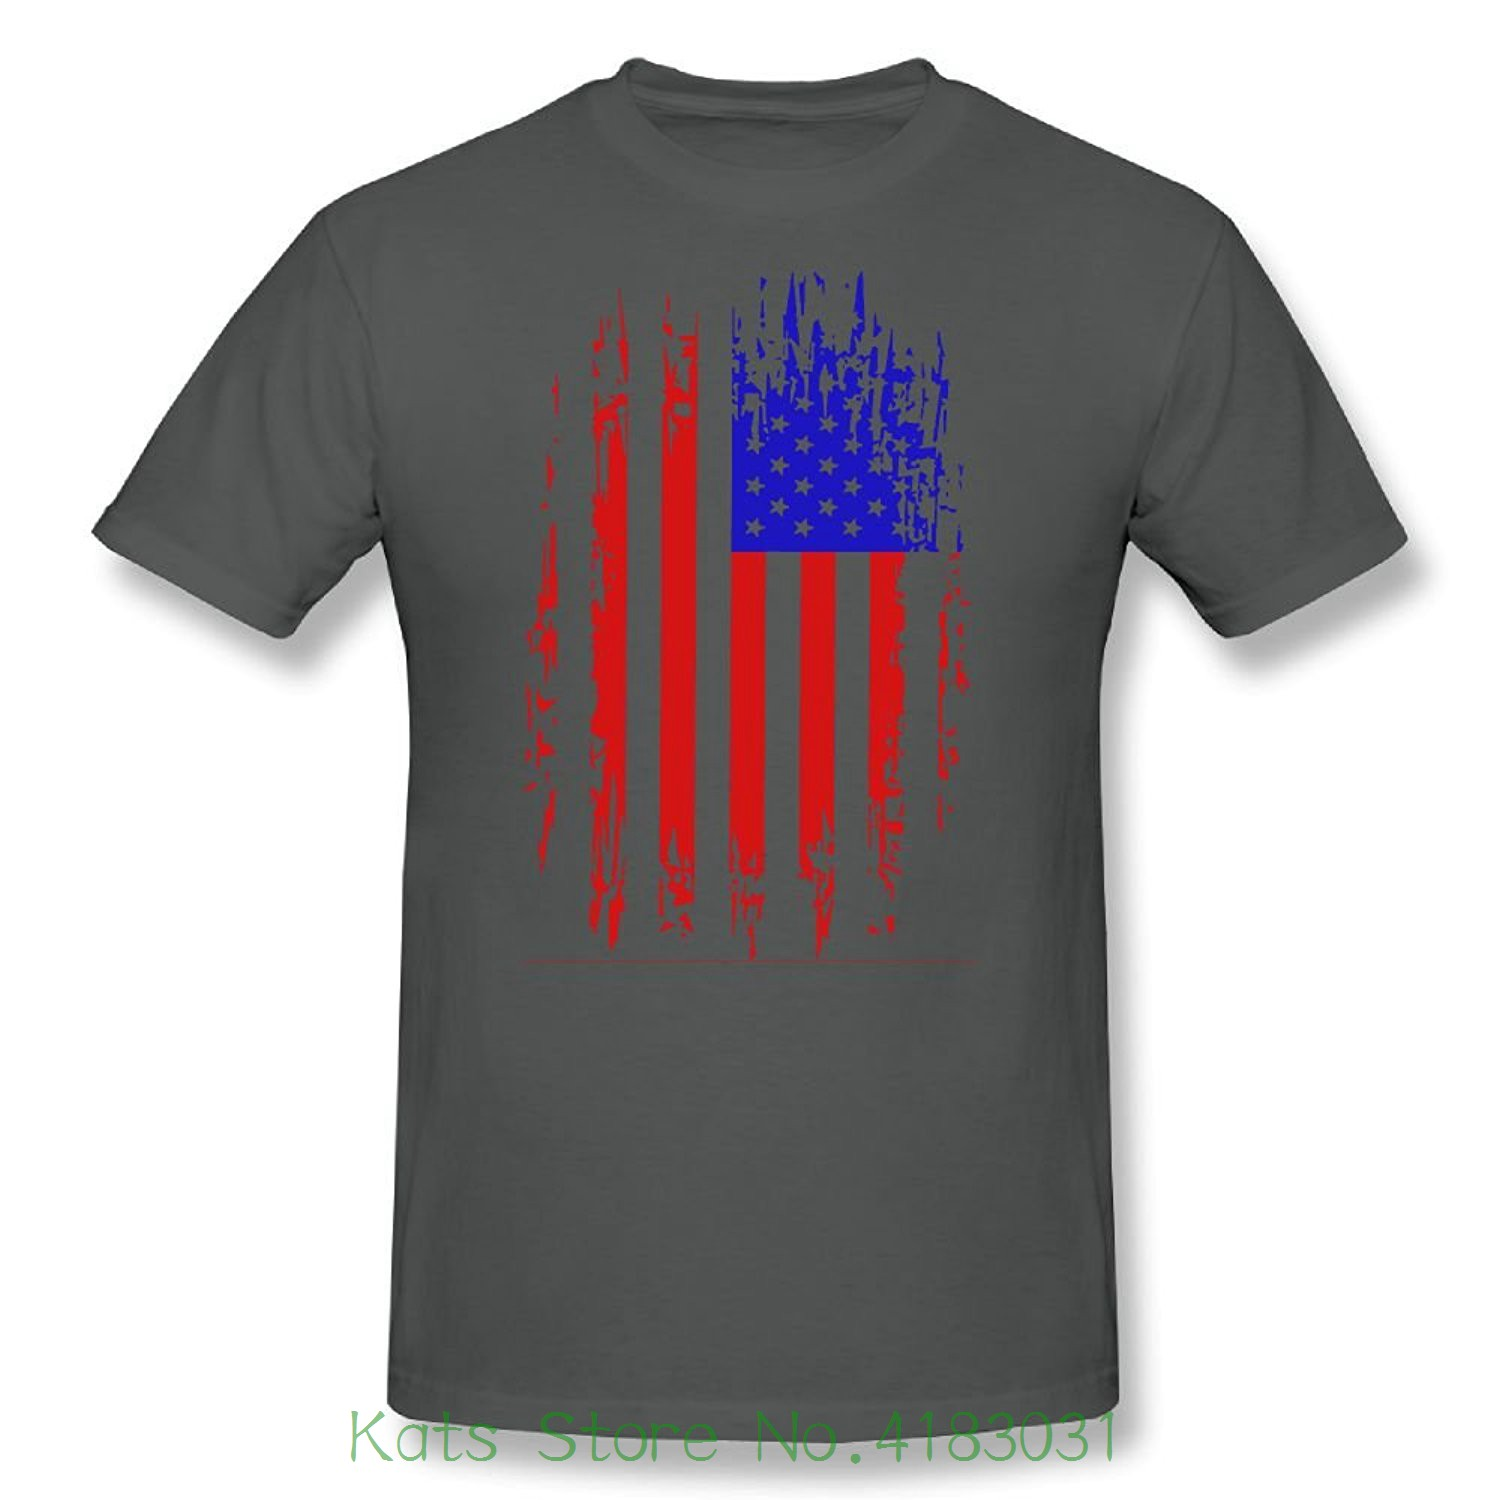 Han Shi Blouse , Men Fashion American Flag Short Sleeve Plus Size T-shirt Tee Tank Fashion New Top Tees Tshirts